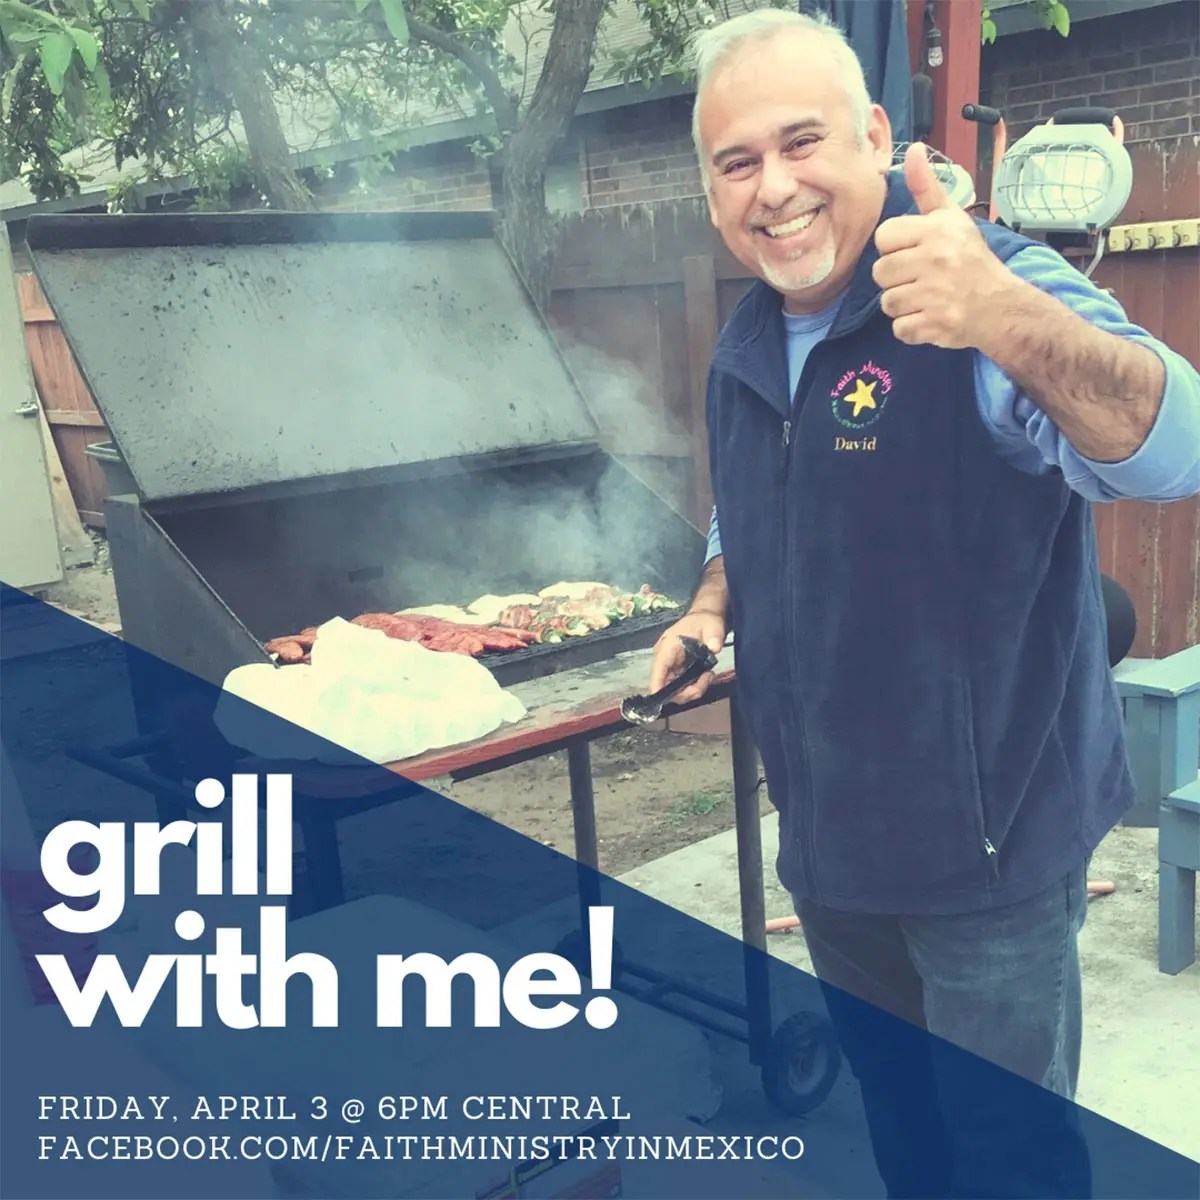 Join us on Facebook on Friday at 6pm Central for a virtual cookout with David